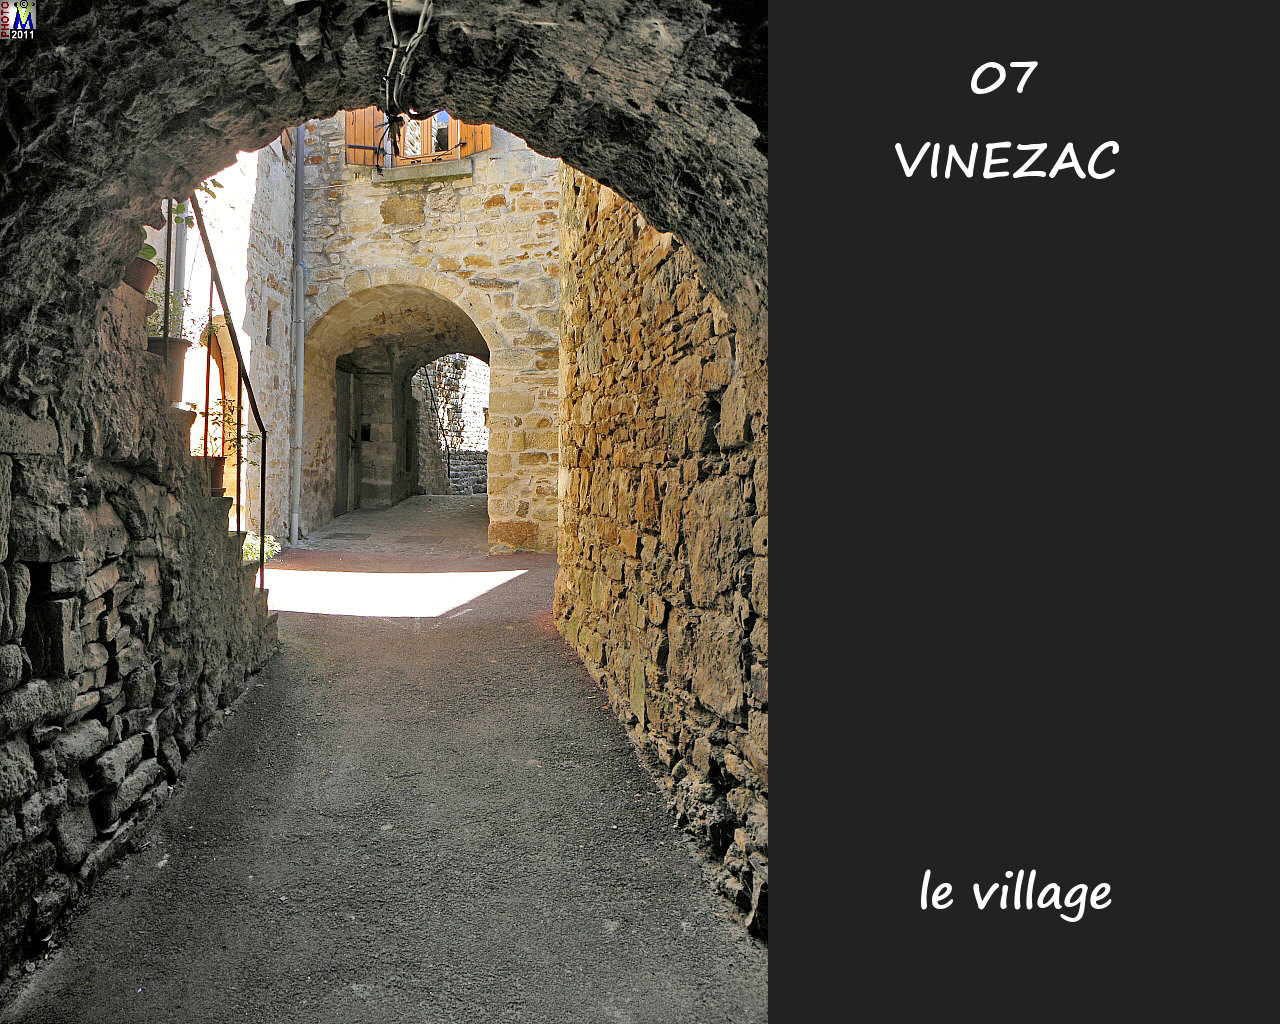 07VINEZAC_village_176.jpg